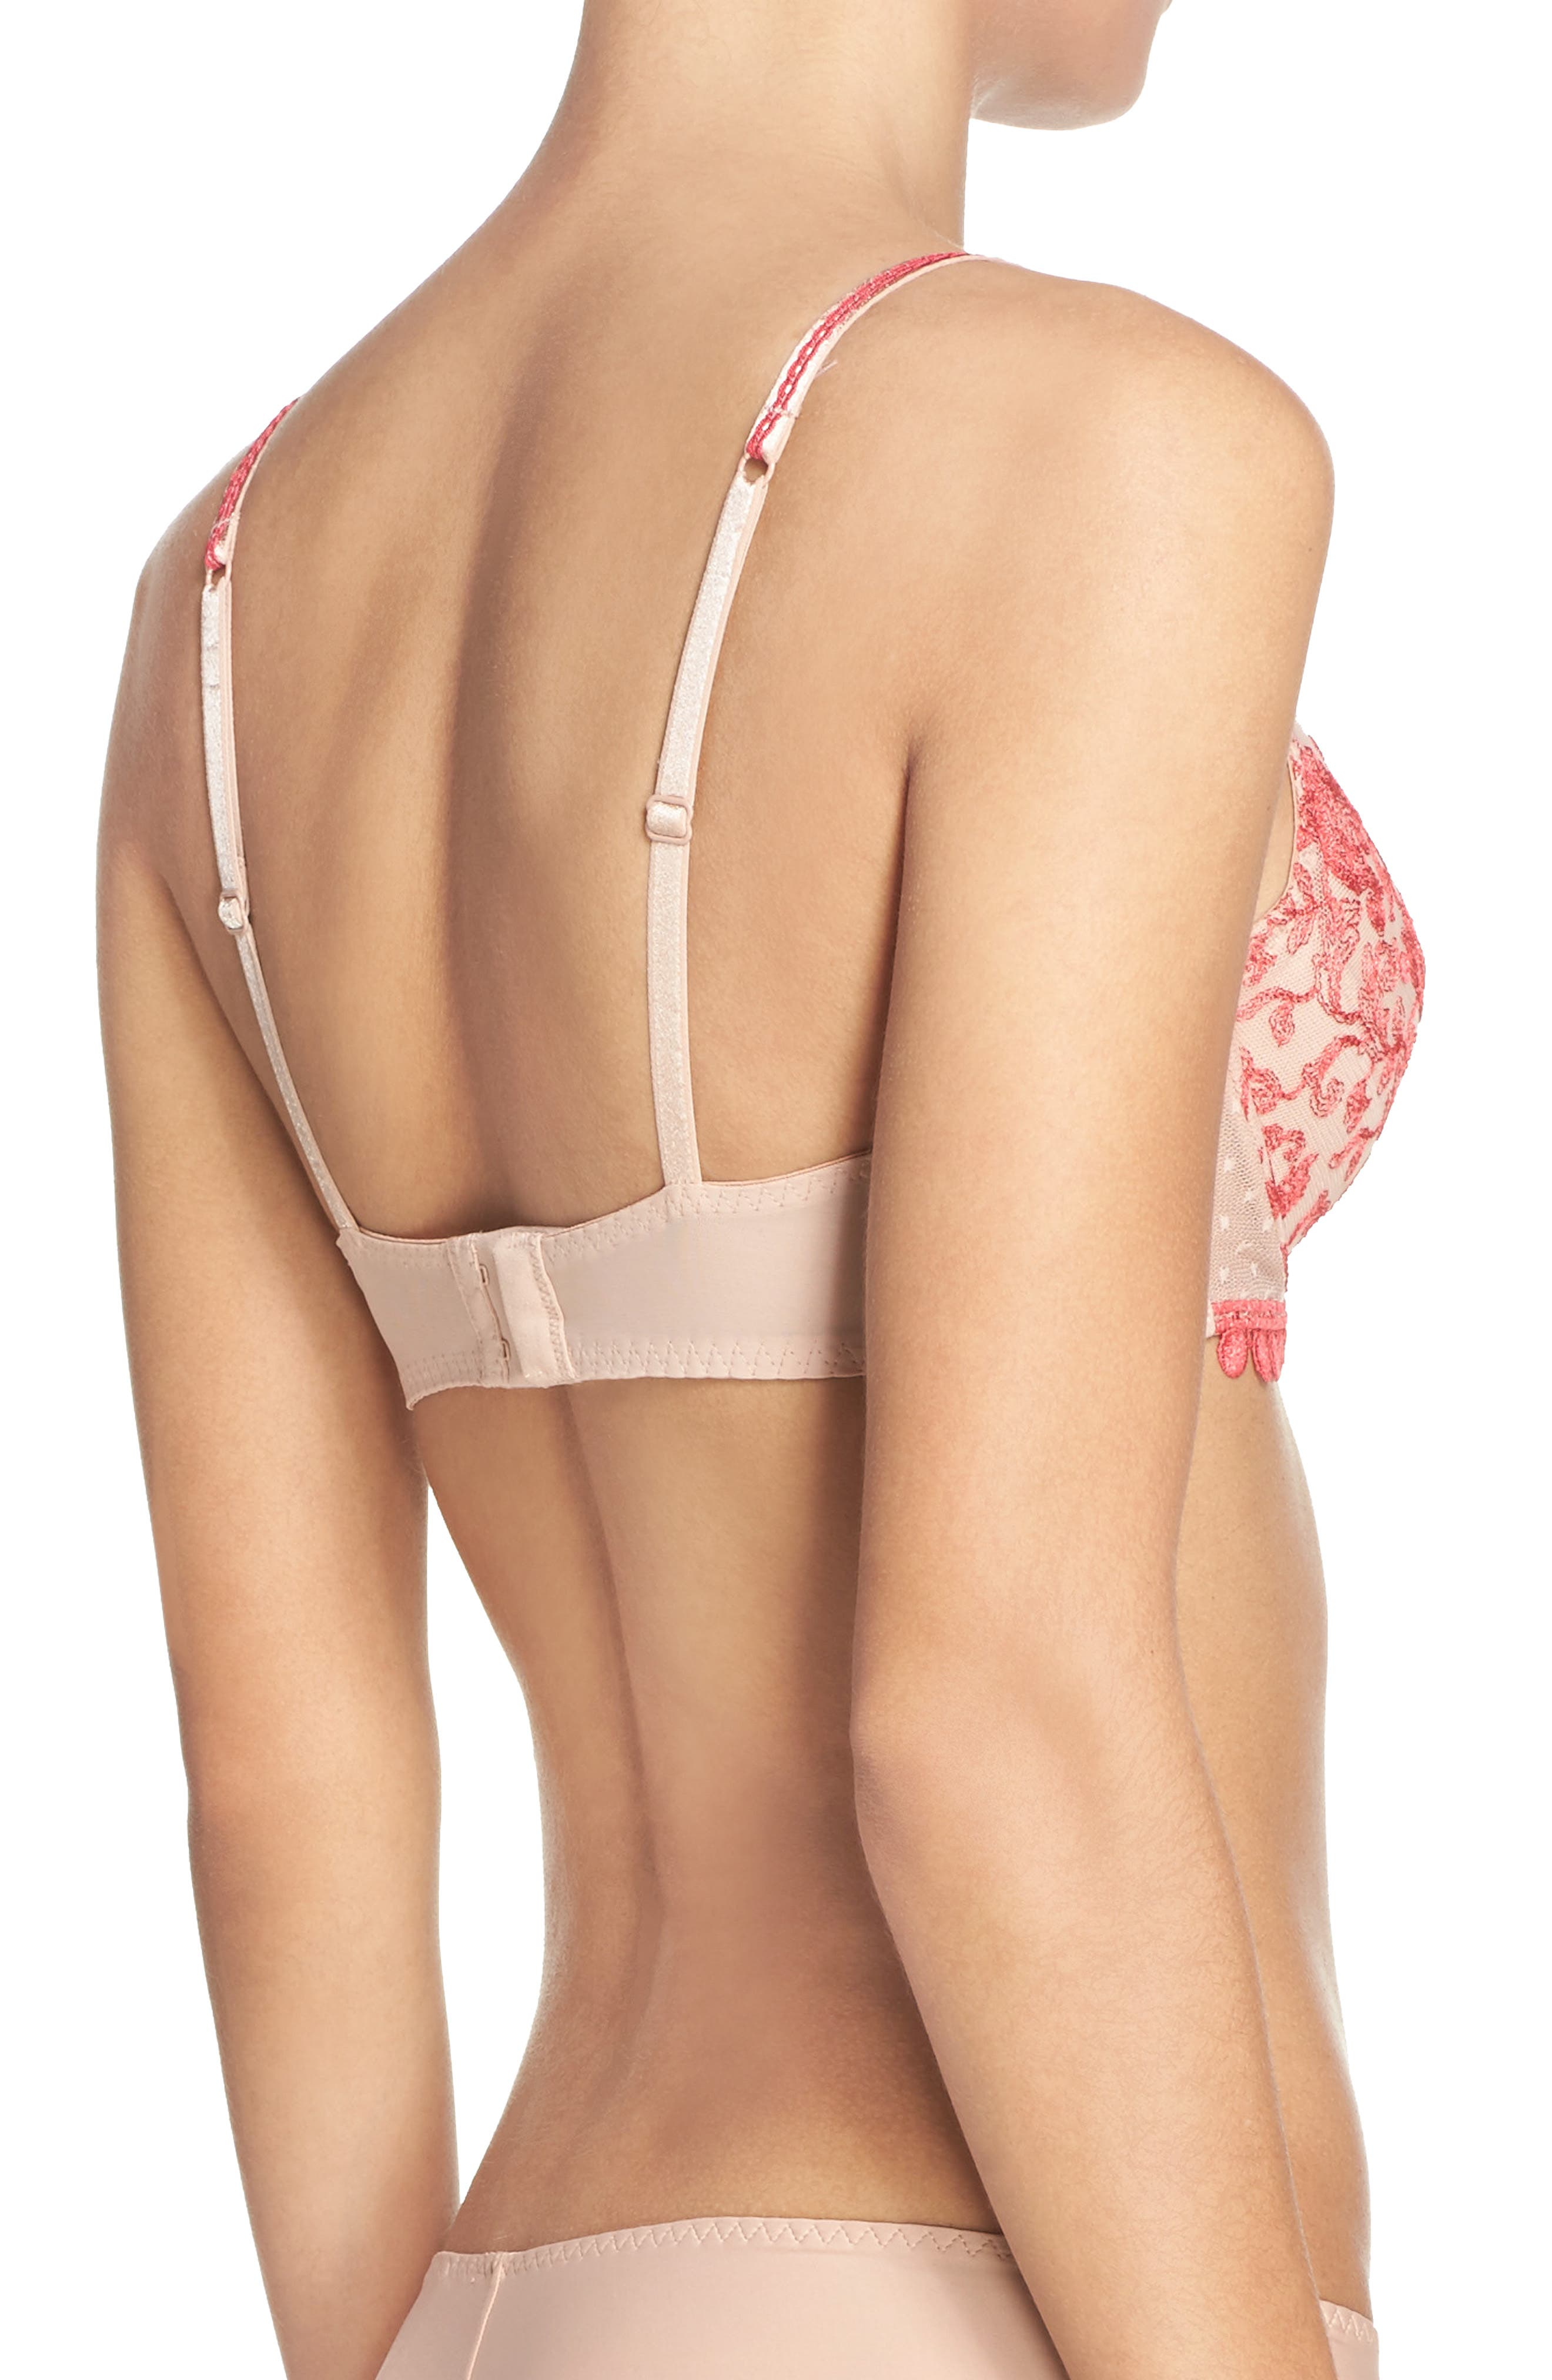 Baisers de Paris Underwire Bra,                             Alternate thumbnail 6, color,